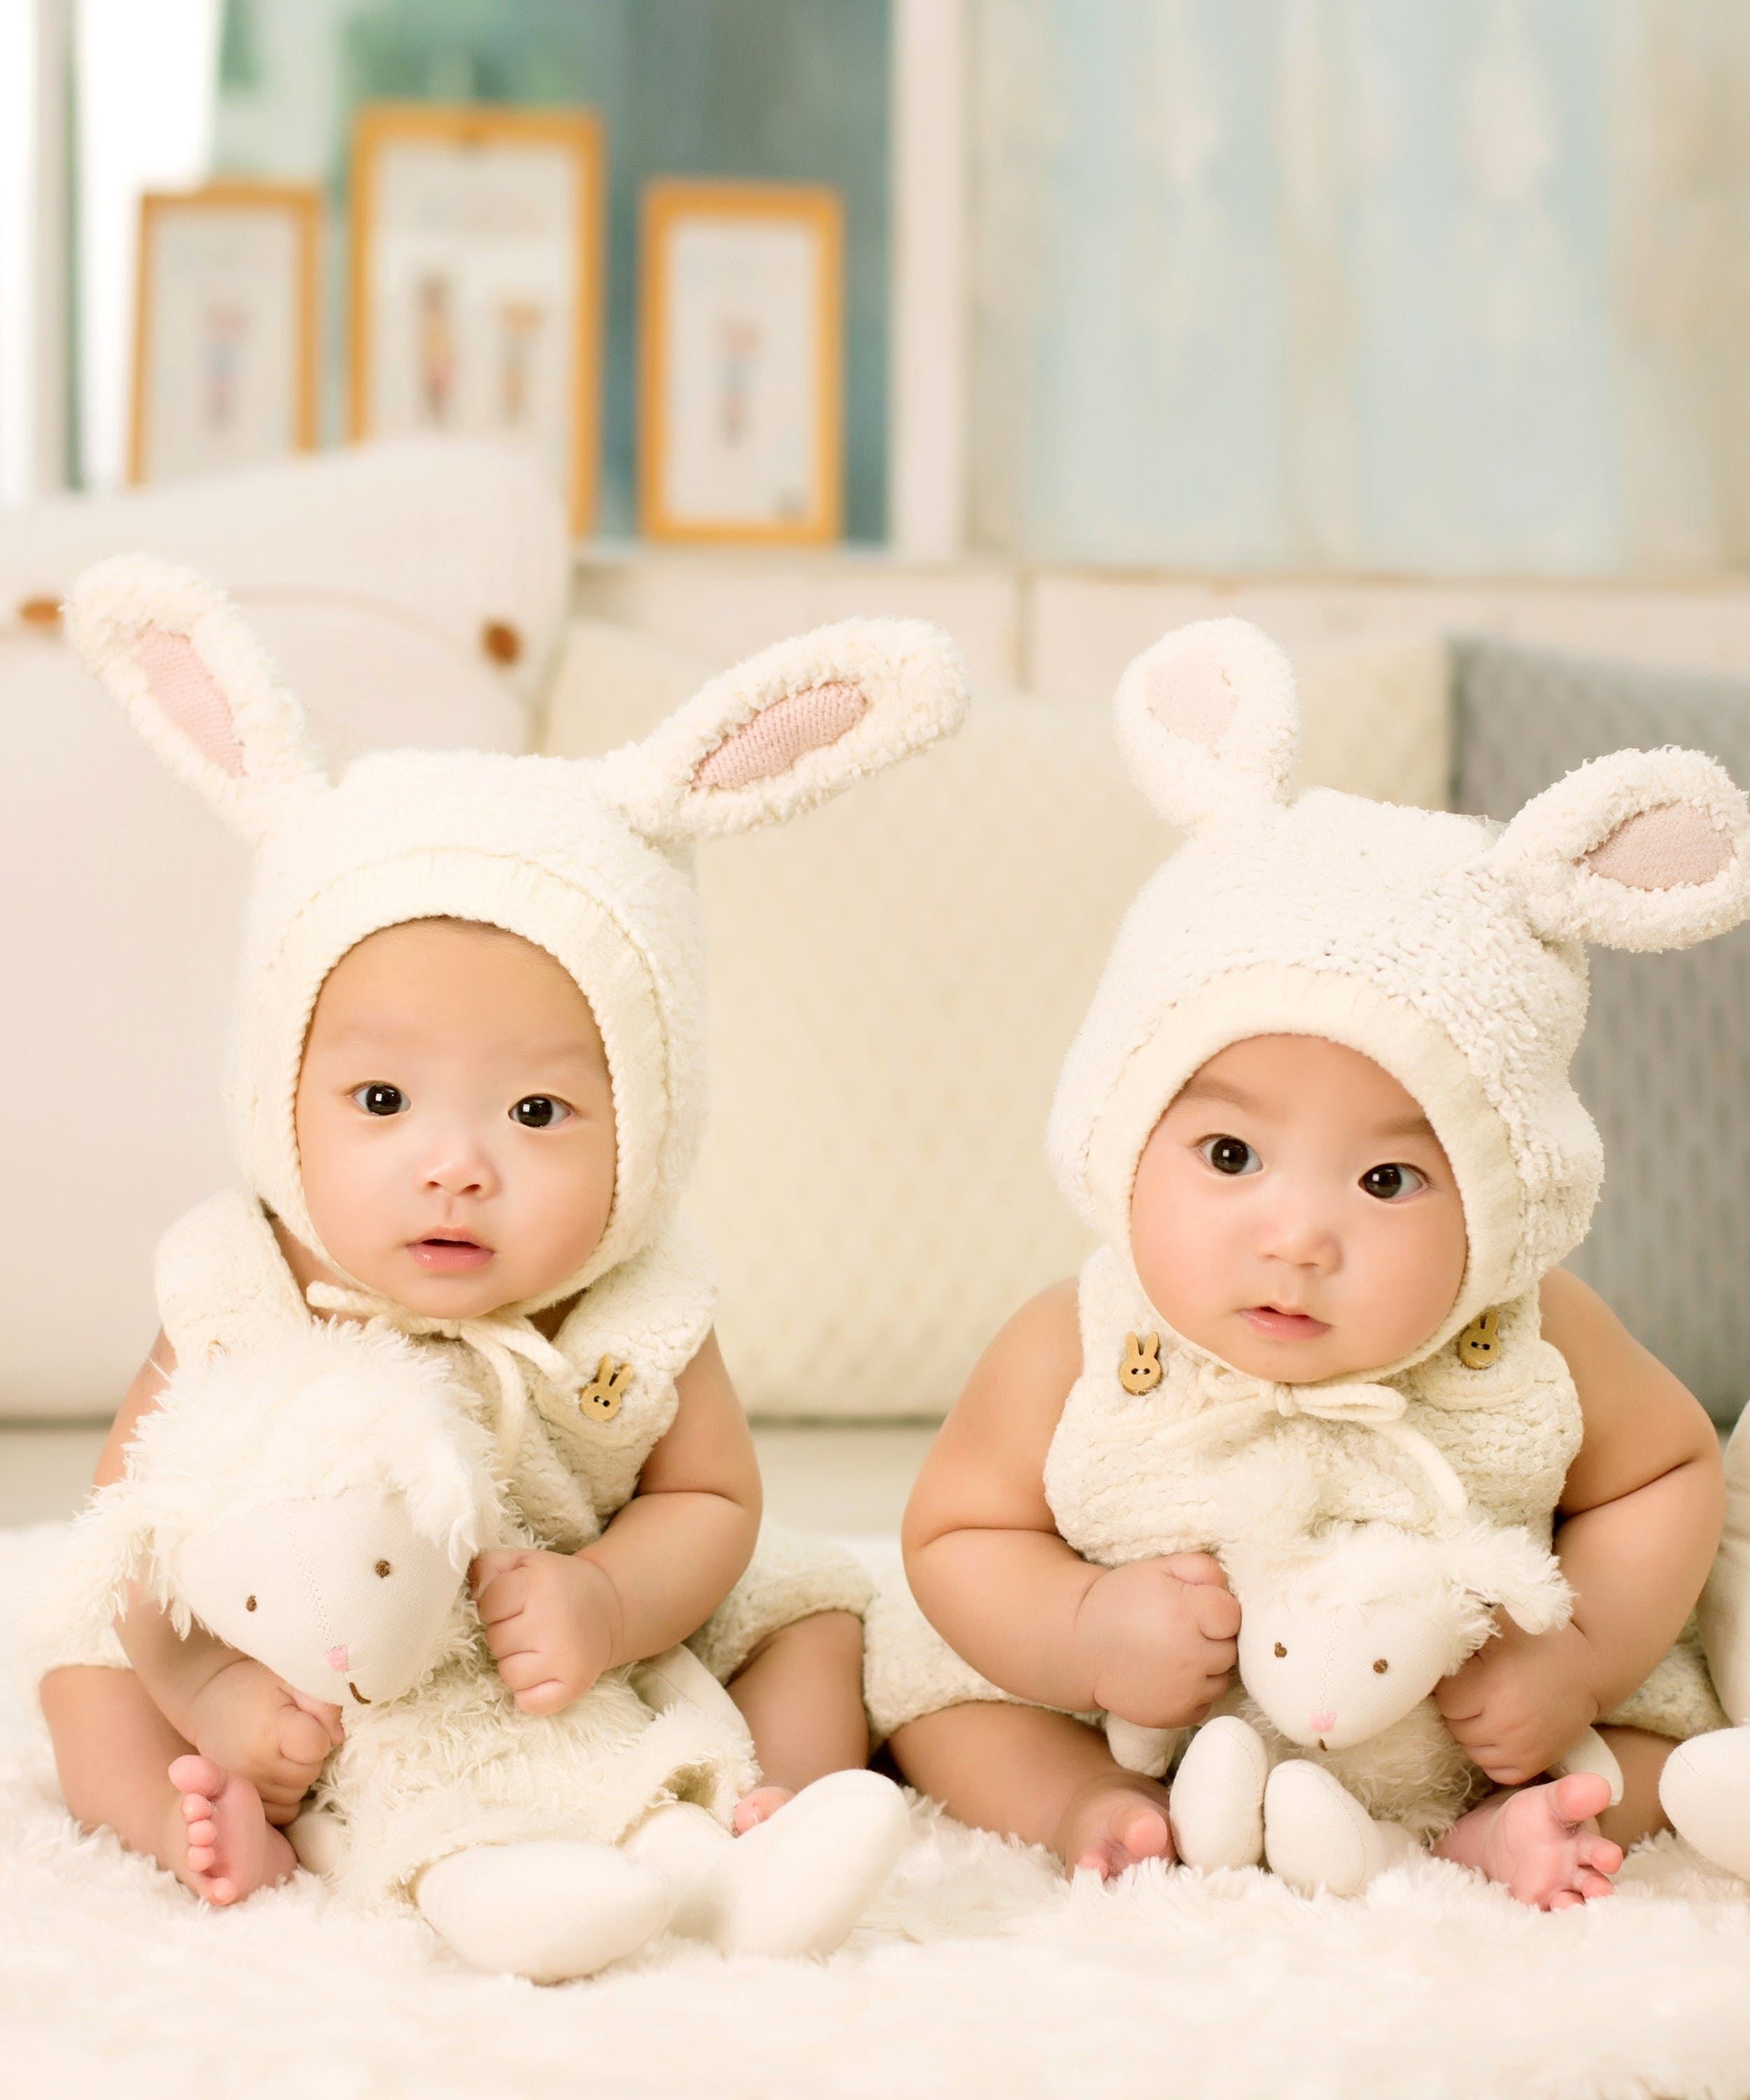 2 Babies Wearing White Headdress White Holding White Plush Toys